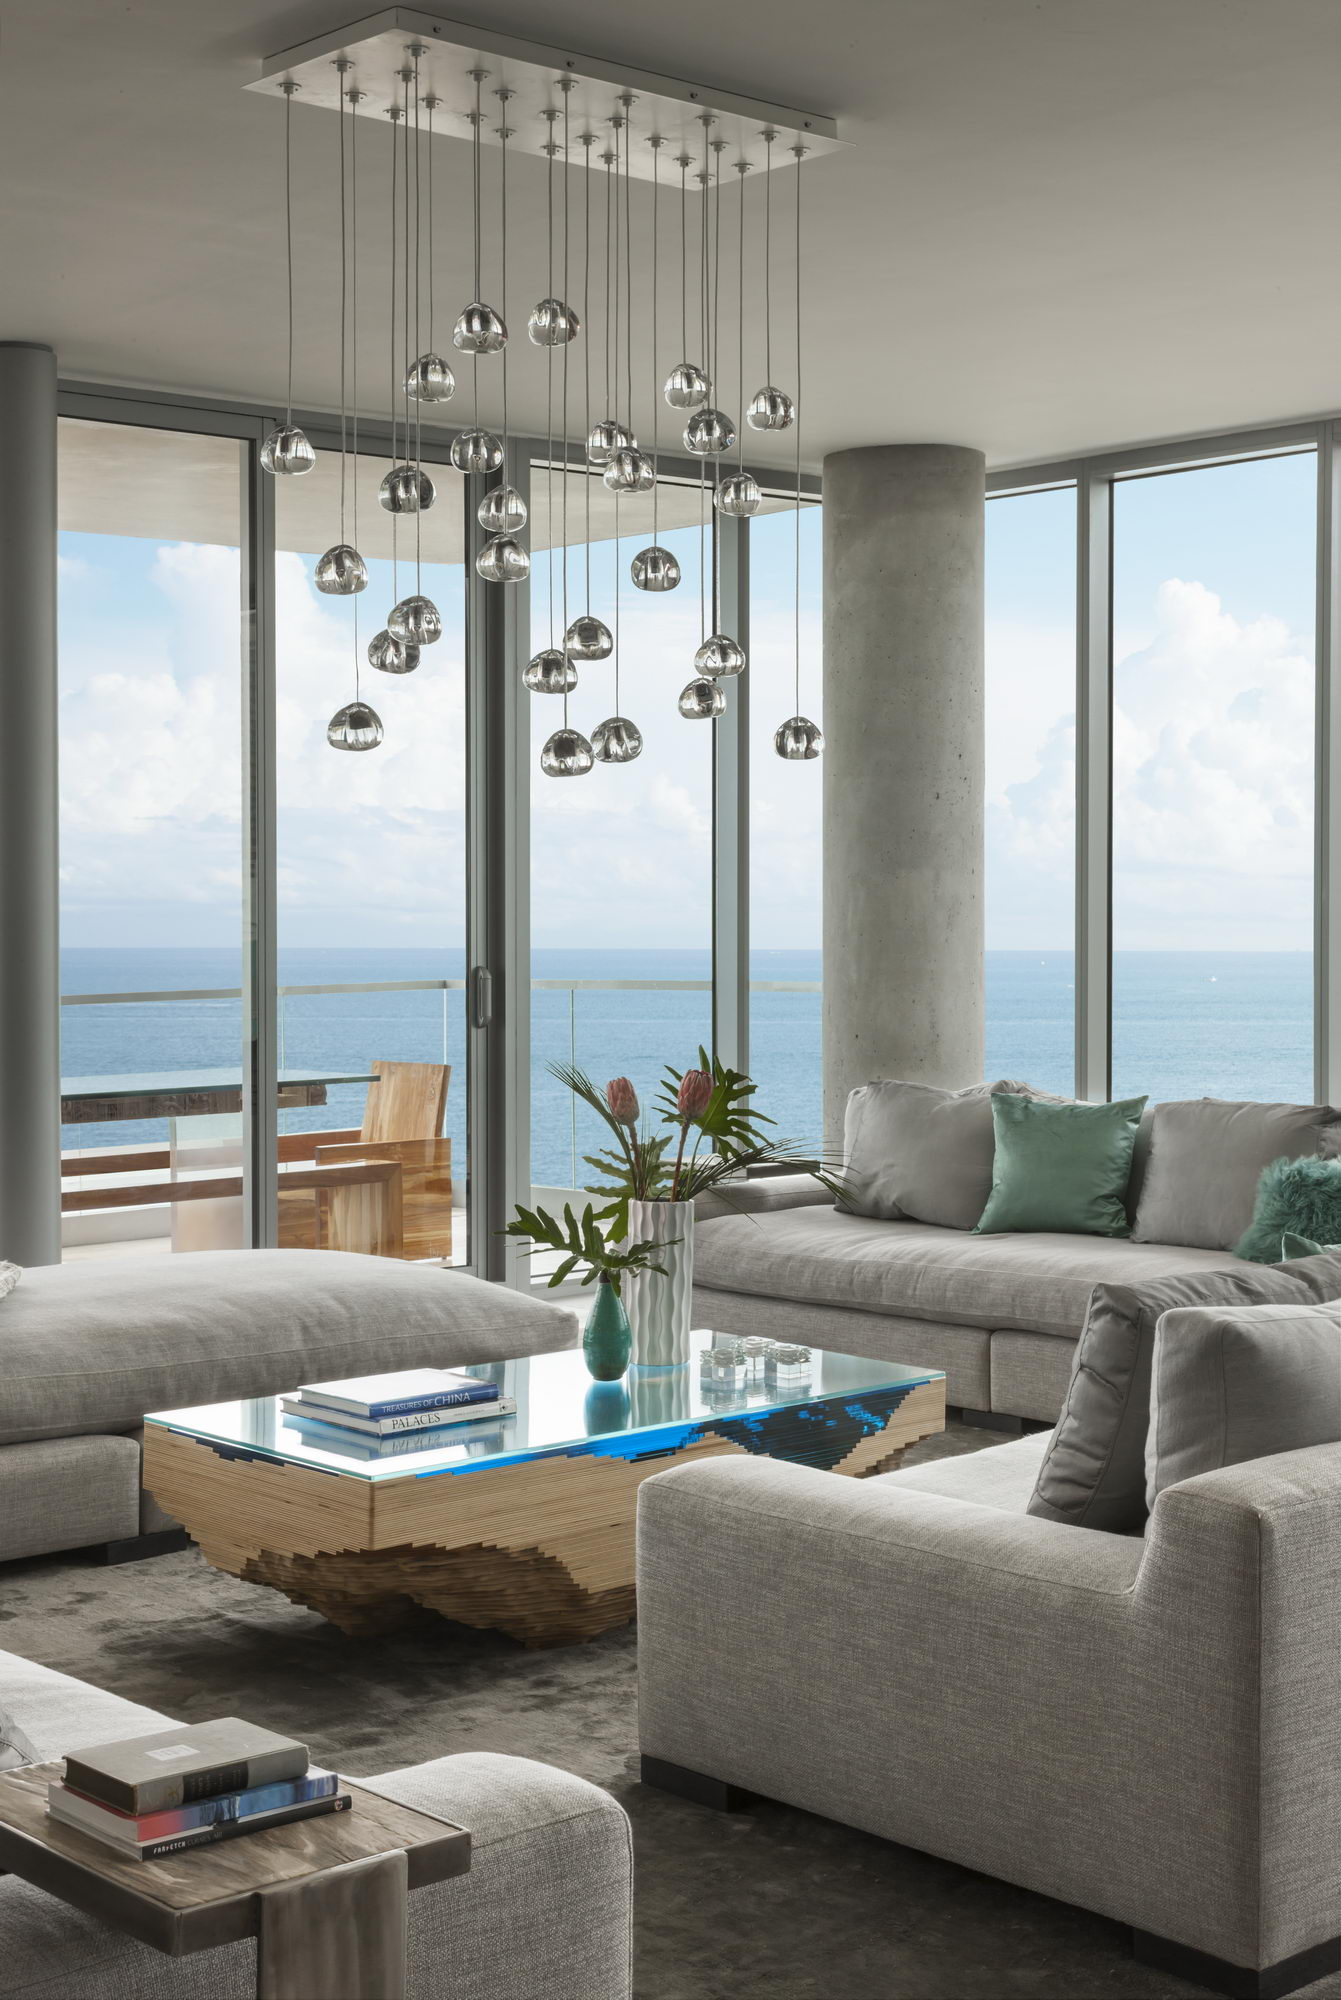 Ocean penthouse beach view south beach Miami Florida contemporary apartment living room family topographic table balcony picture windows chandelier